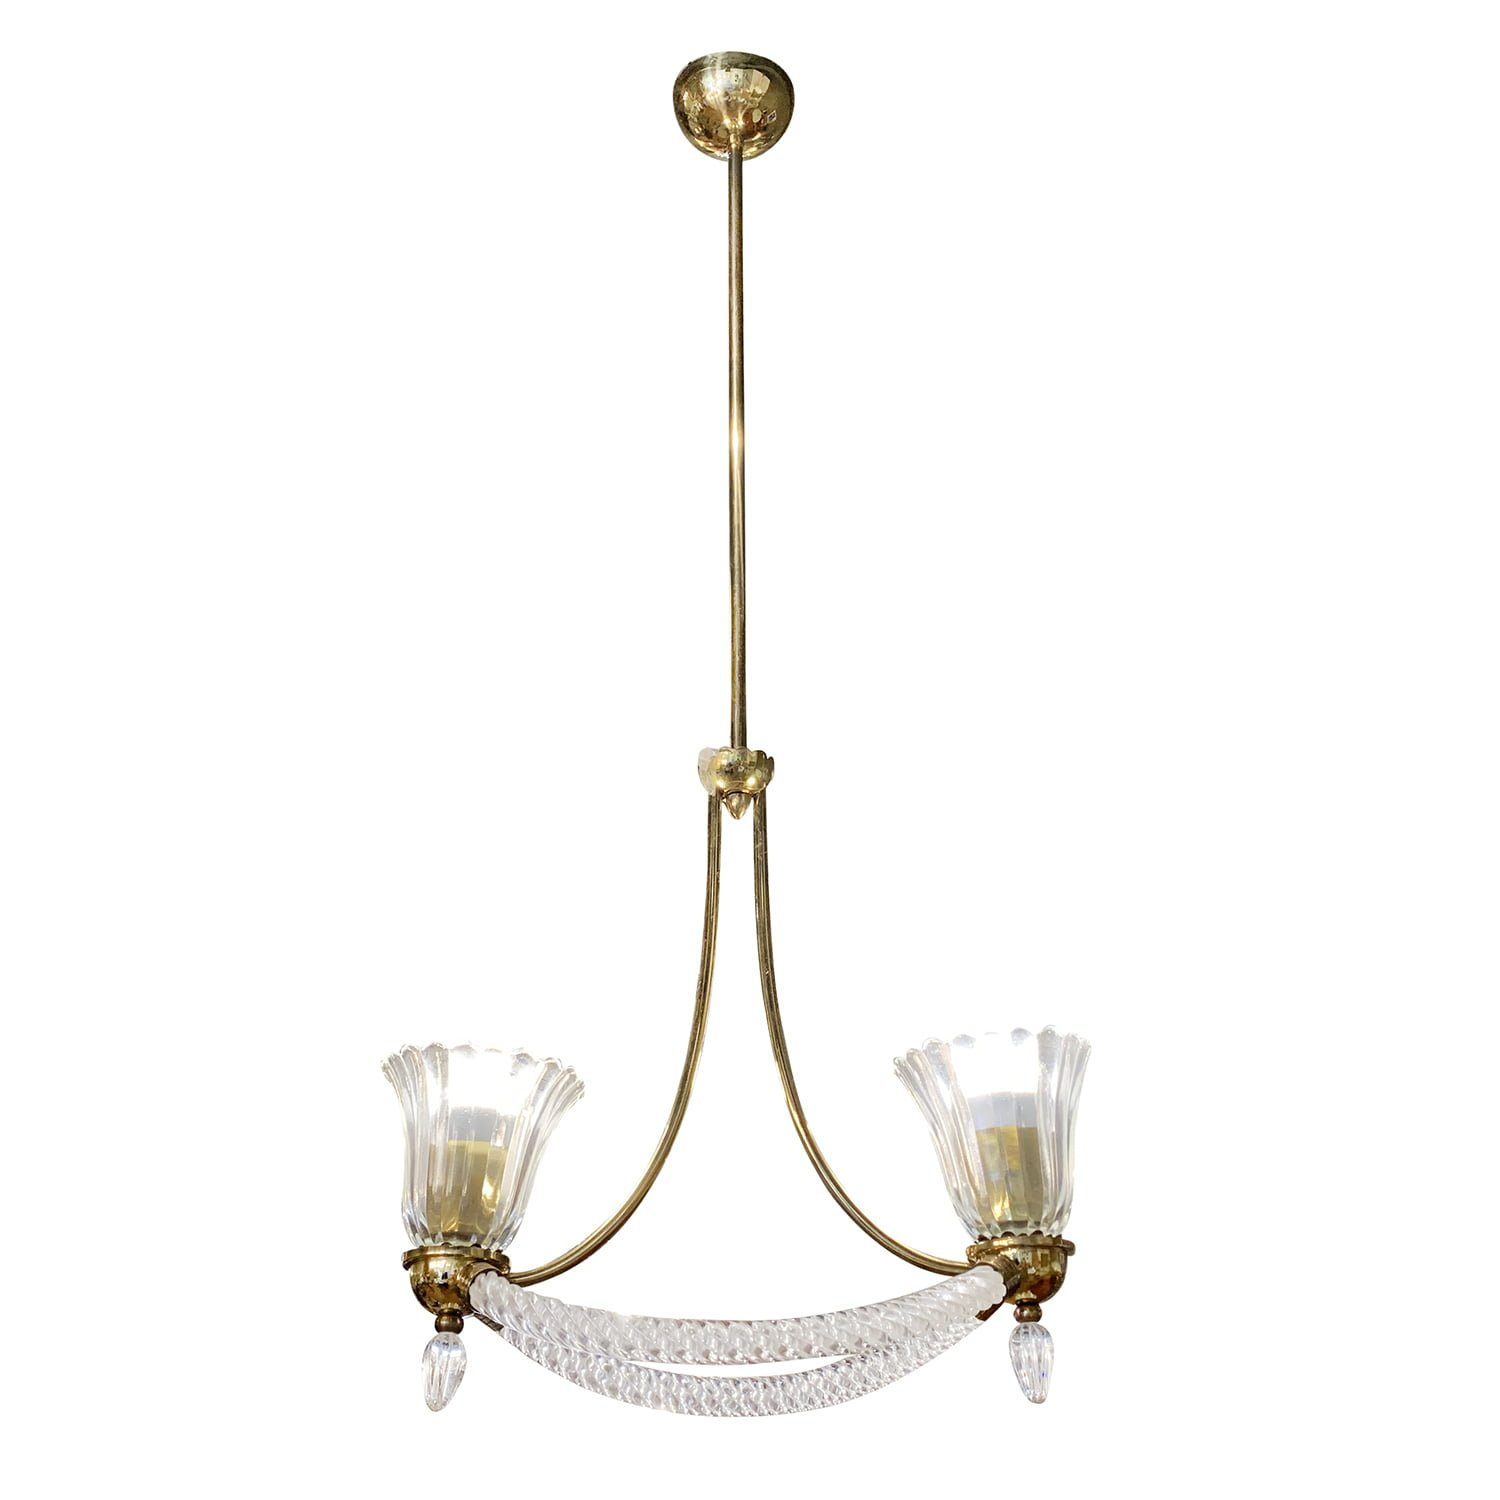 20th Century Italian Murano Glass Chandelier by Barovier & Toso